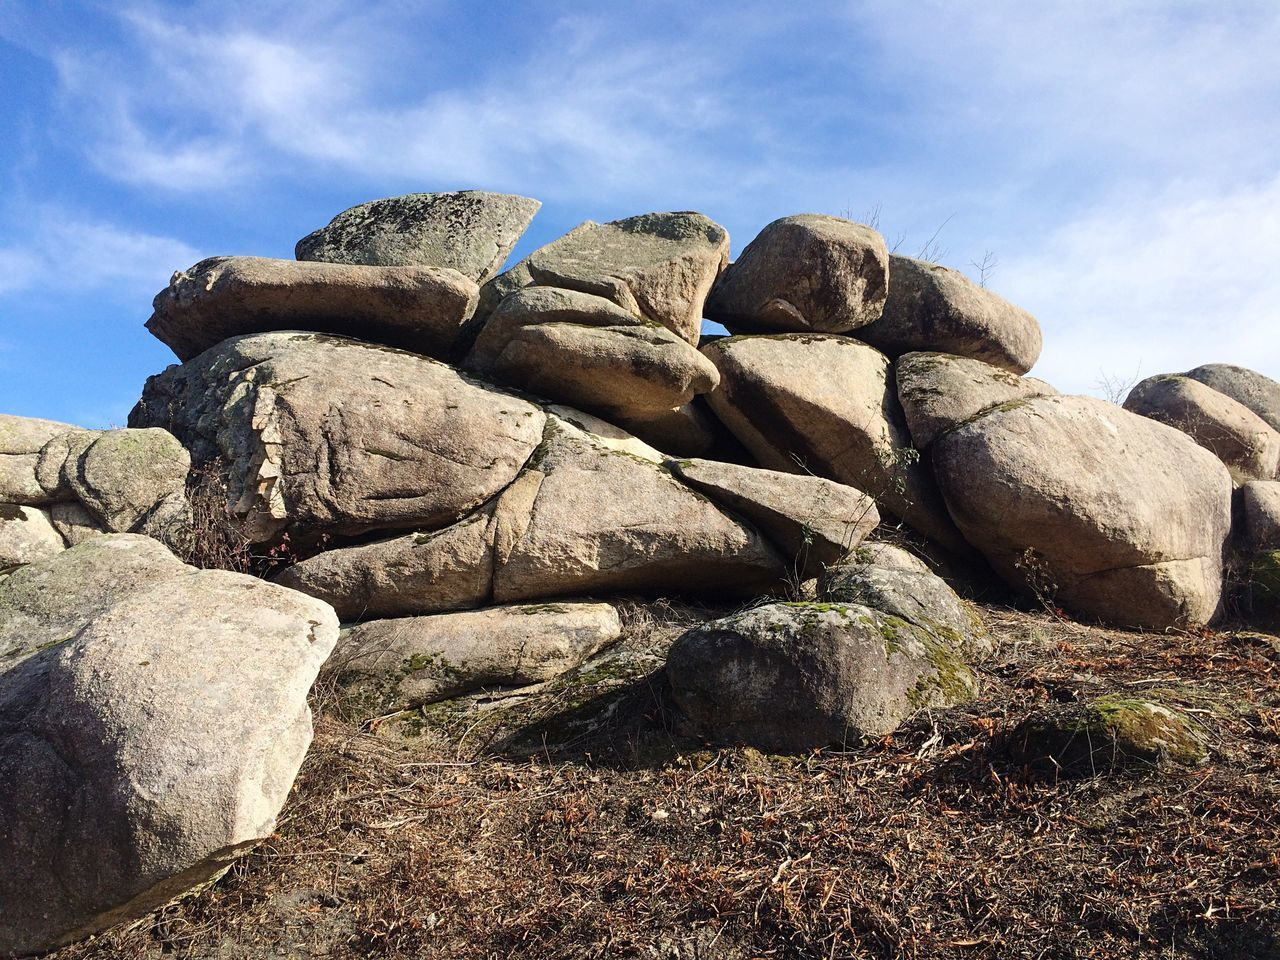 rock - object, nature, day, beauty in nature, cloud - sky, sky, outdoors, tranquility, tranquil scene, no people, scenics, low angle view, landscape